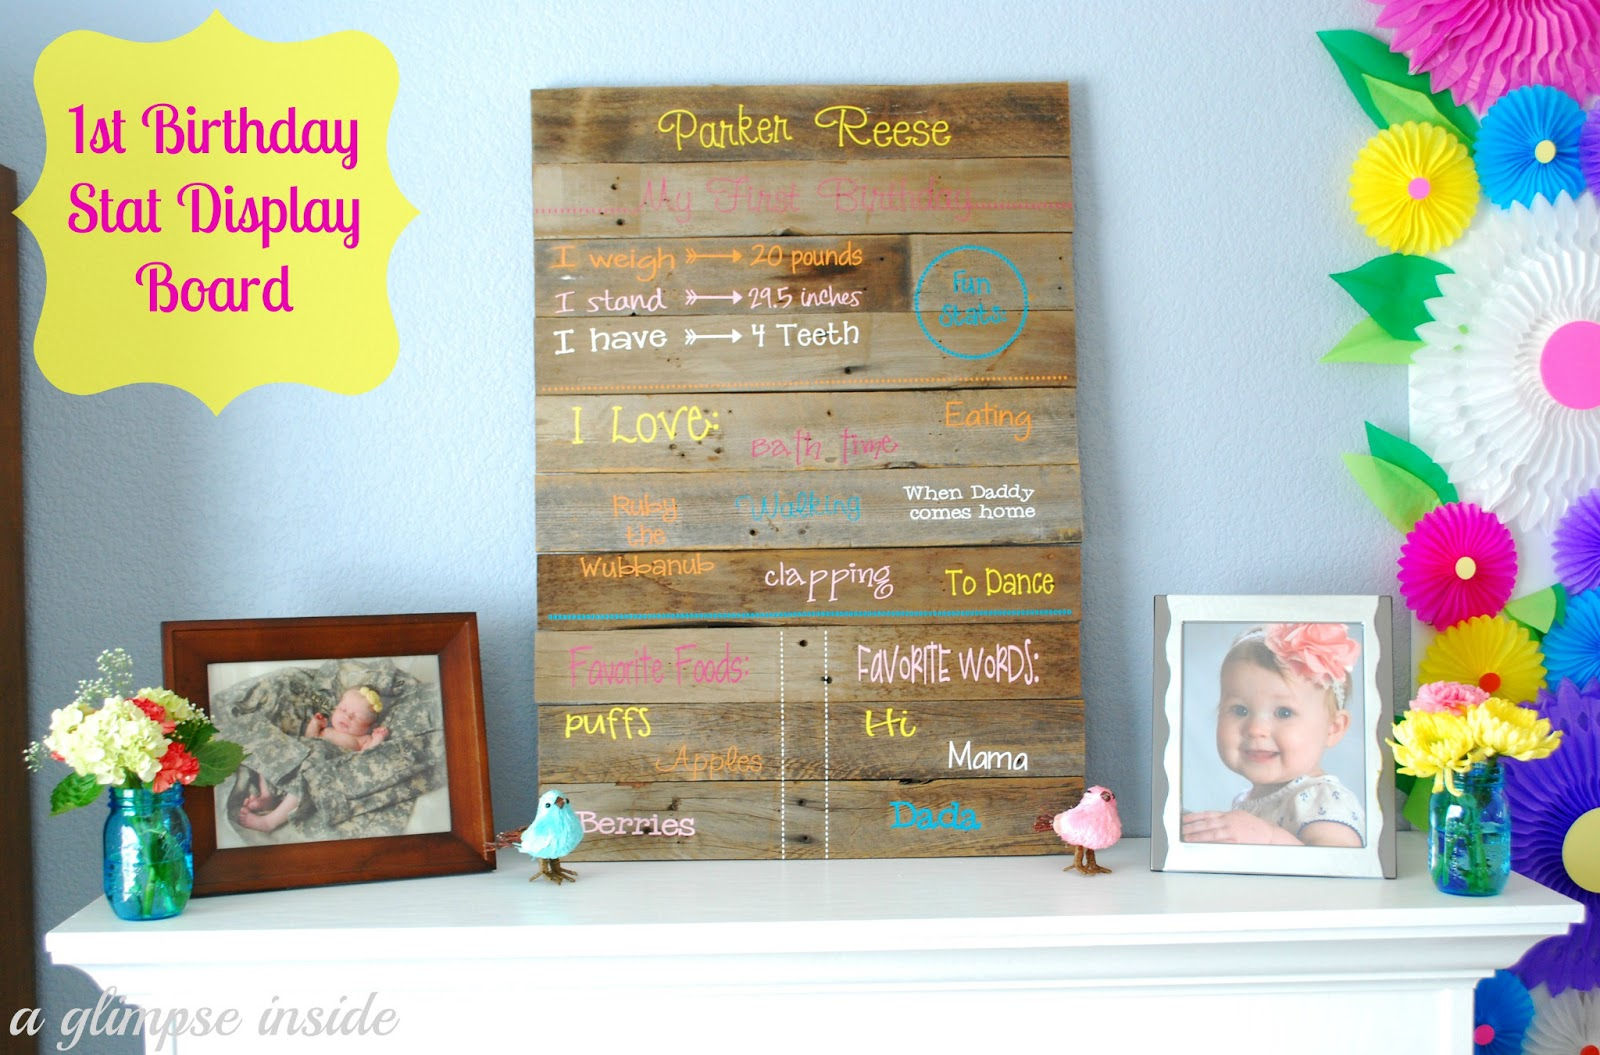 1st Birthday Stat Display Board A Glimpse Inside